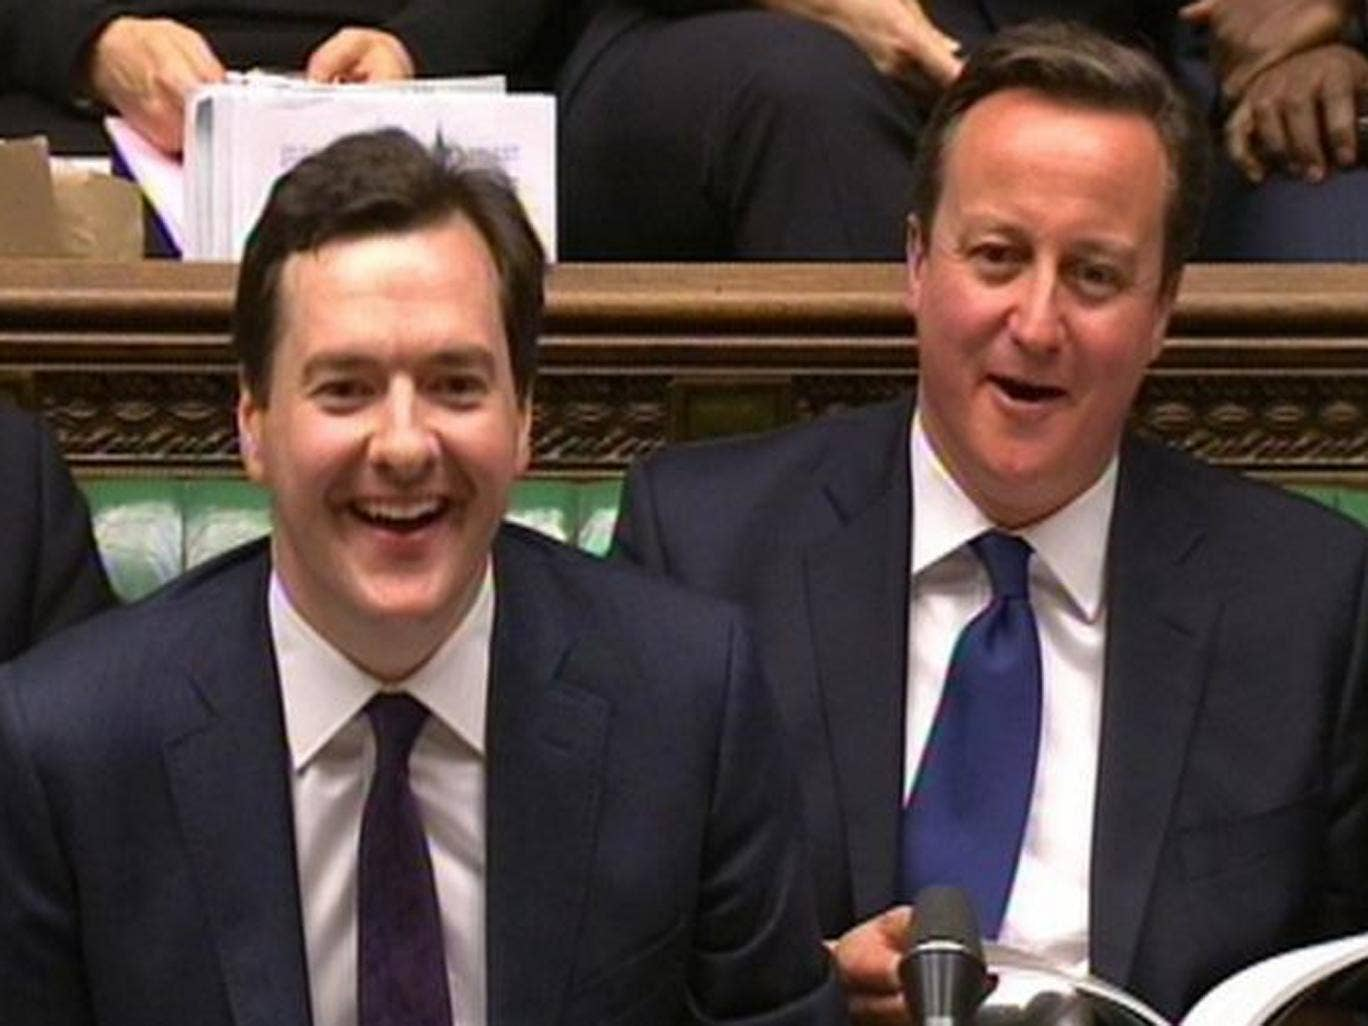 Survey finds 12 per cent rise in confidence in Osborne and Cameron since June